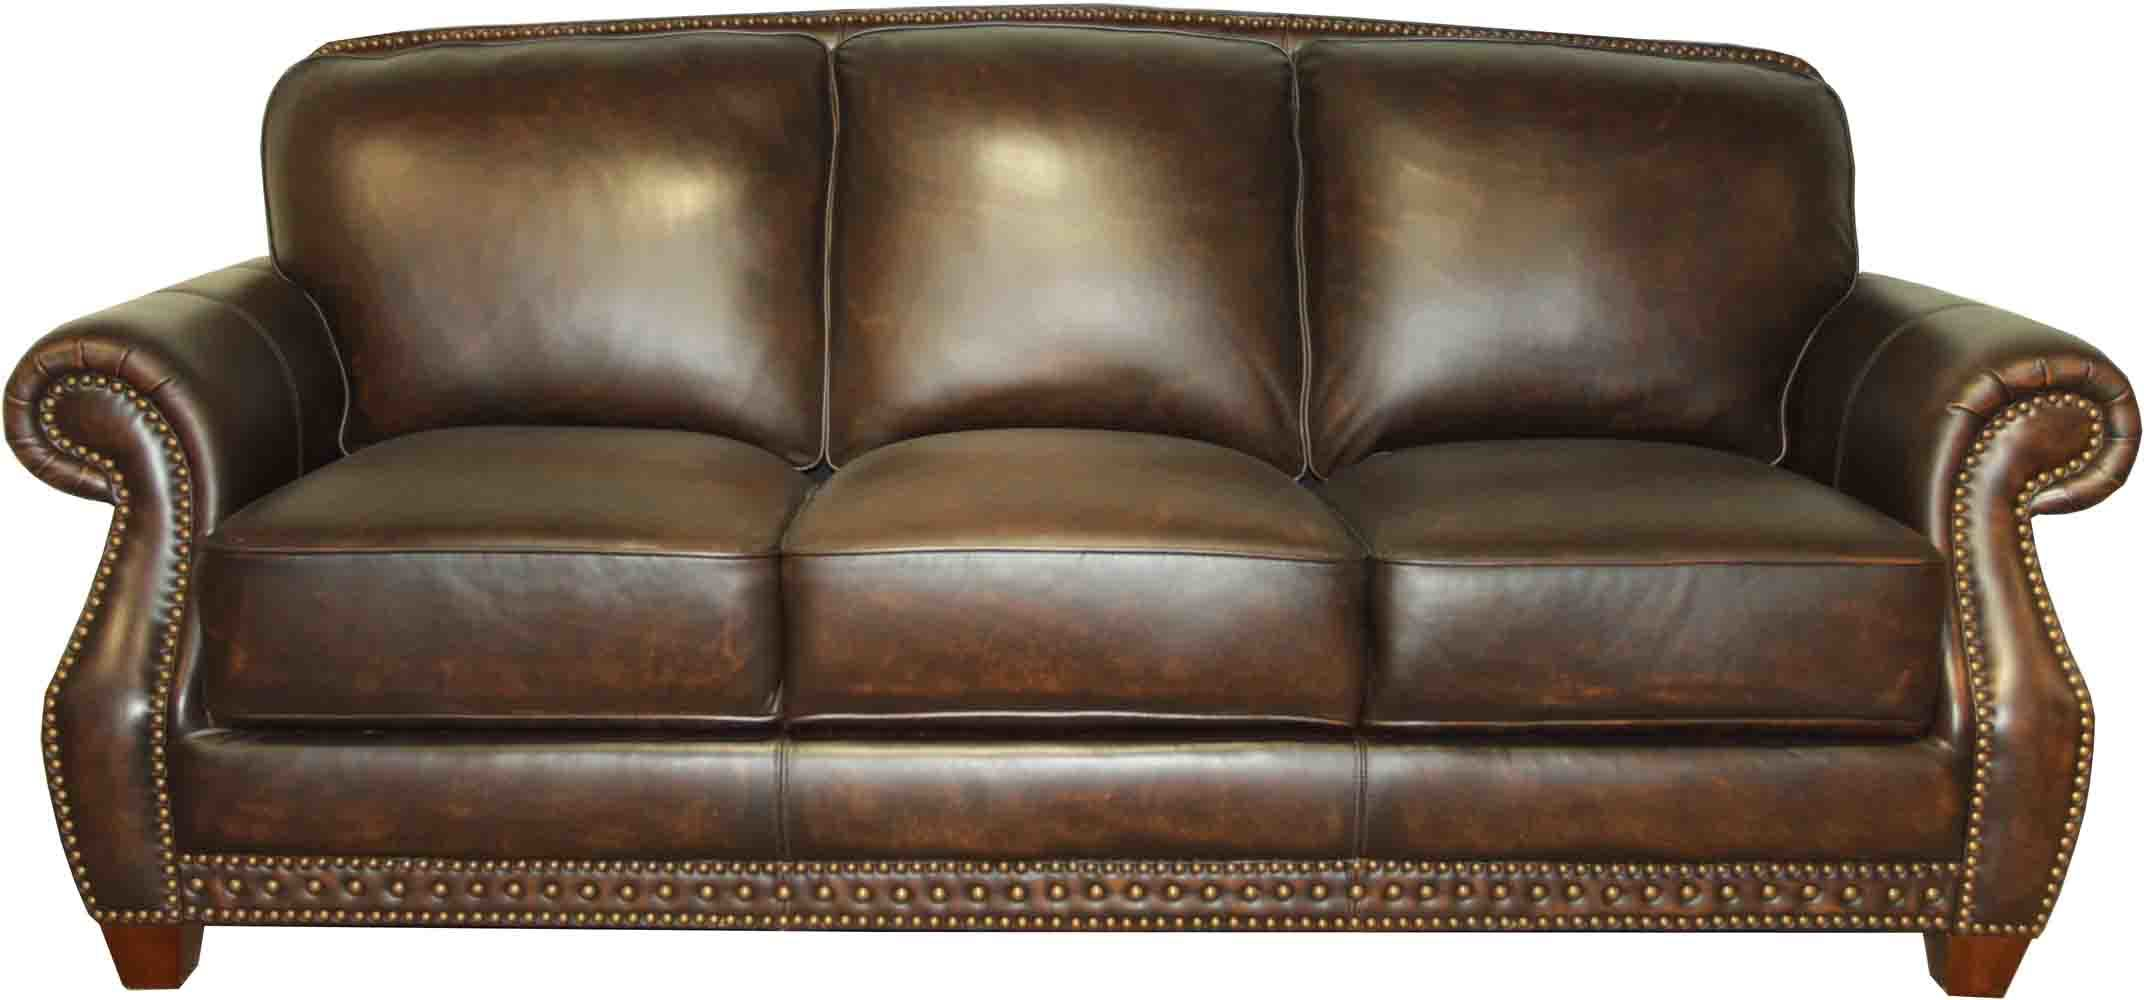 china leather sofa cm5002 china hand rub leather sofa